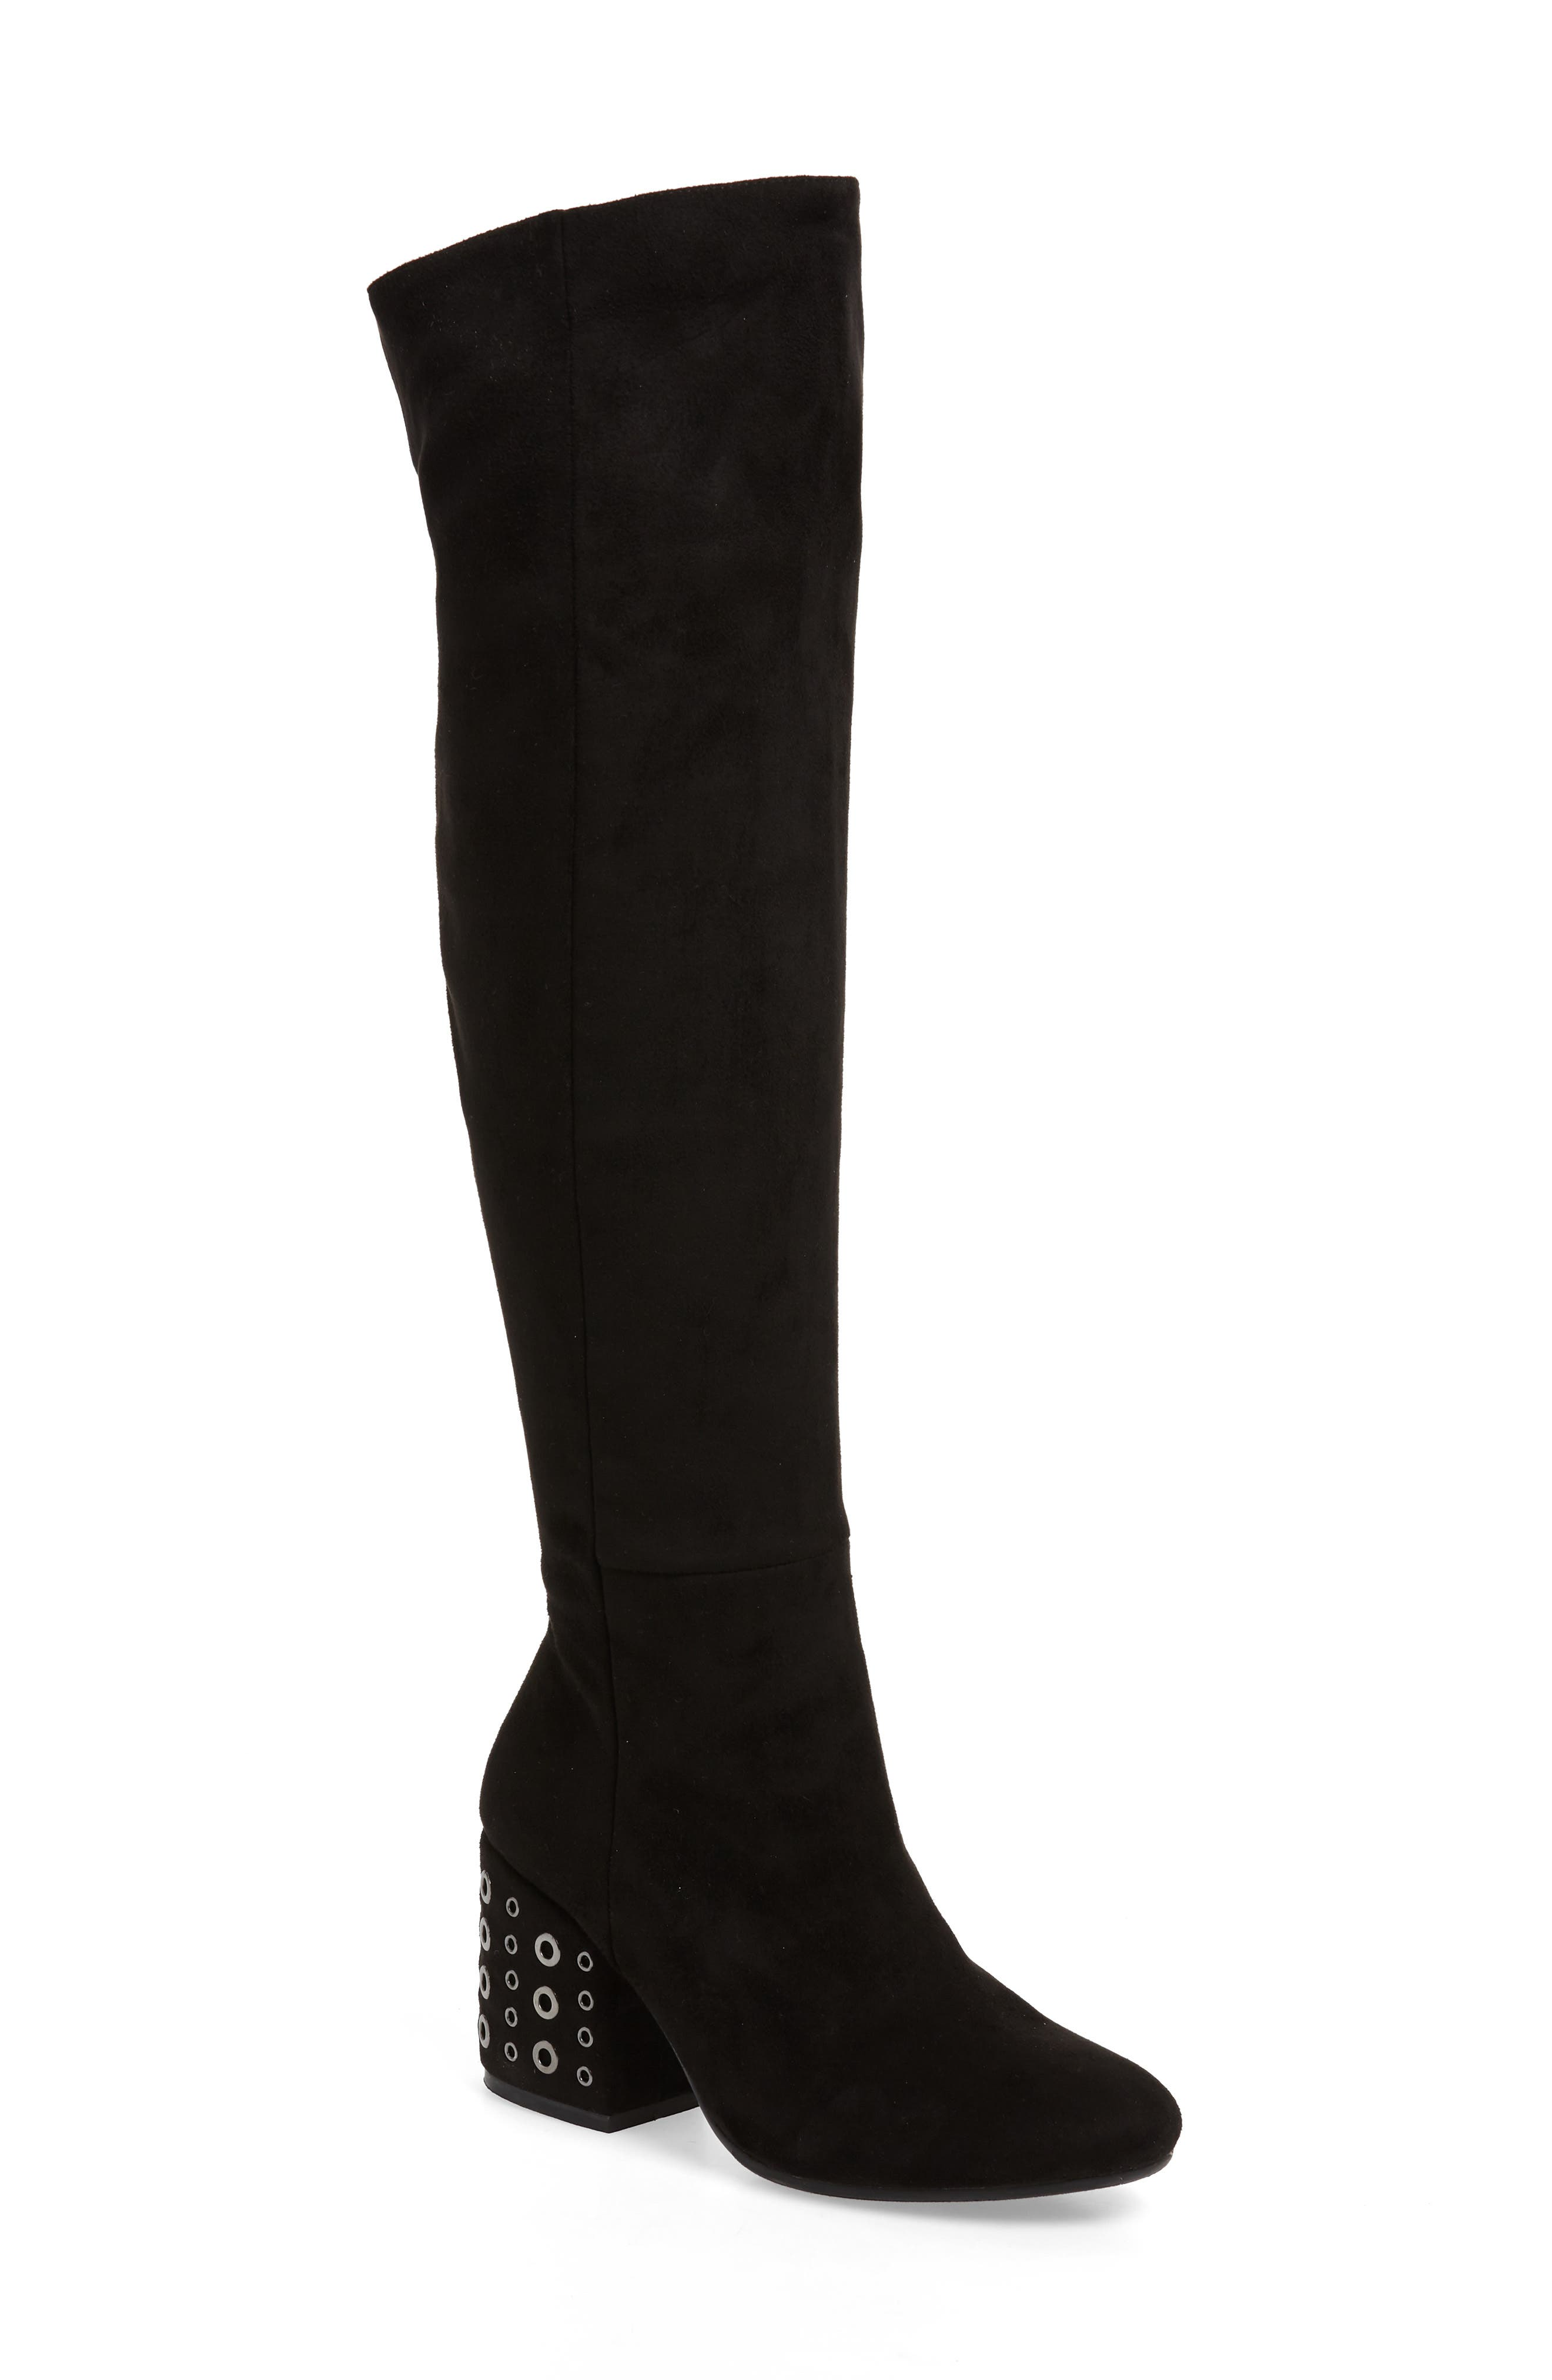 SBICCA, Ellaria Over the Knee Boot, Main thumbnail 1, color, BLACK FABRIC